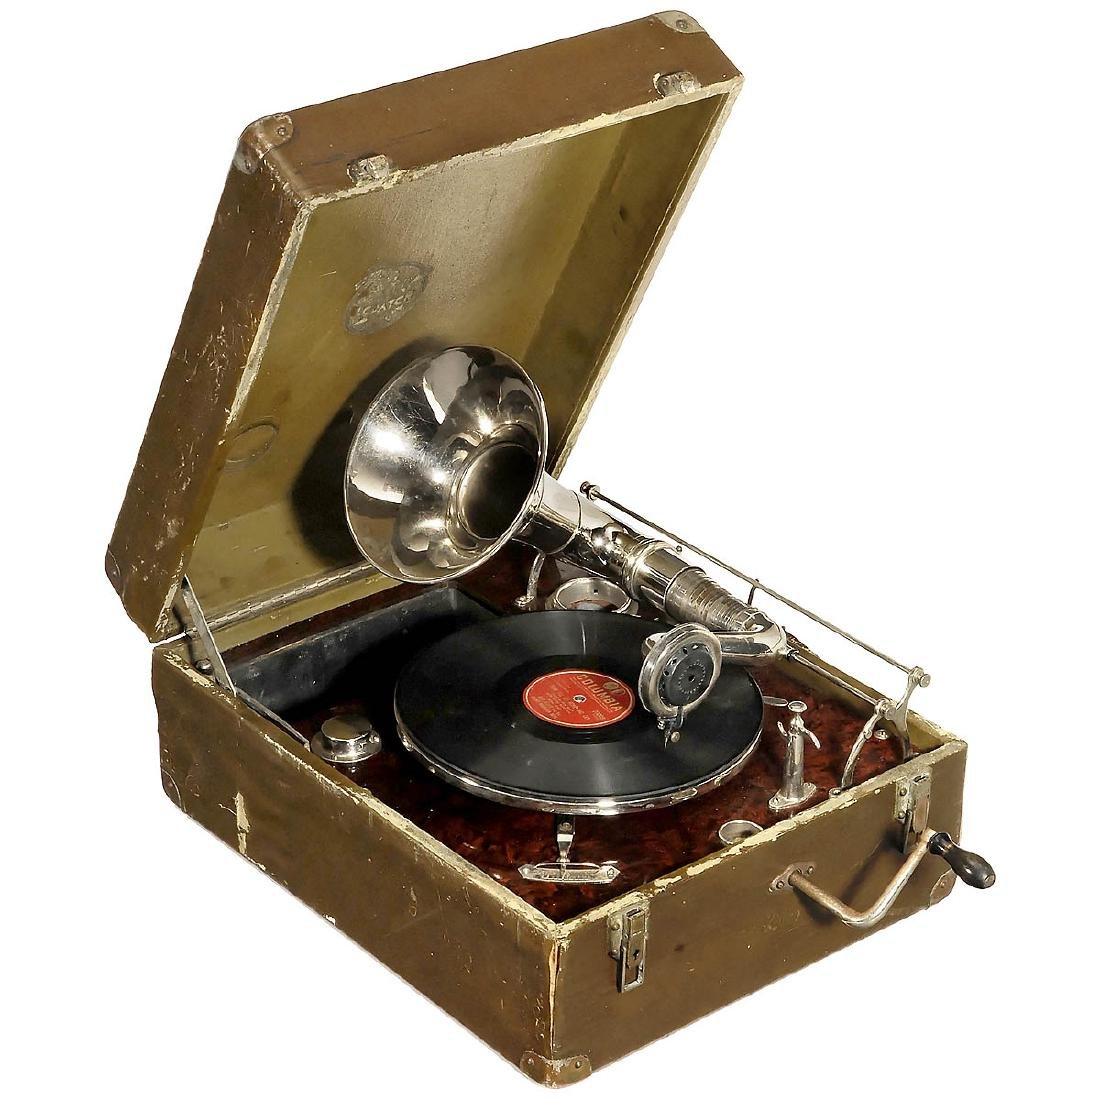 Gramophone with Tangential Tonearm, c. 1925